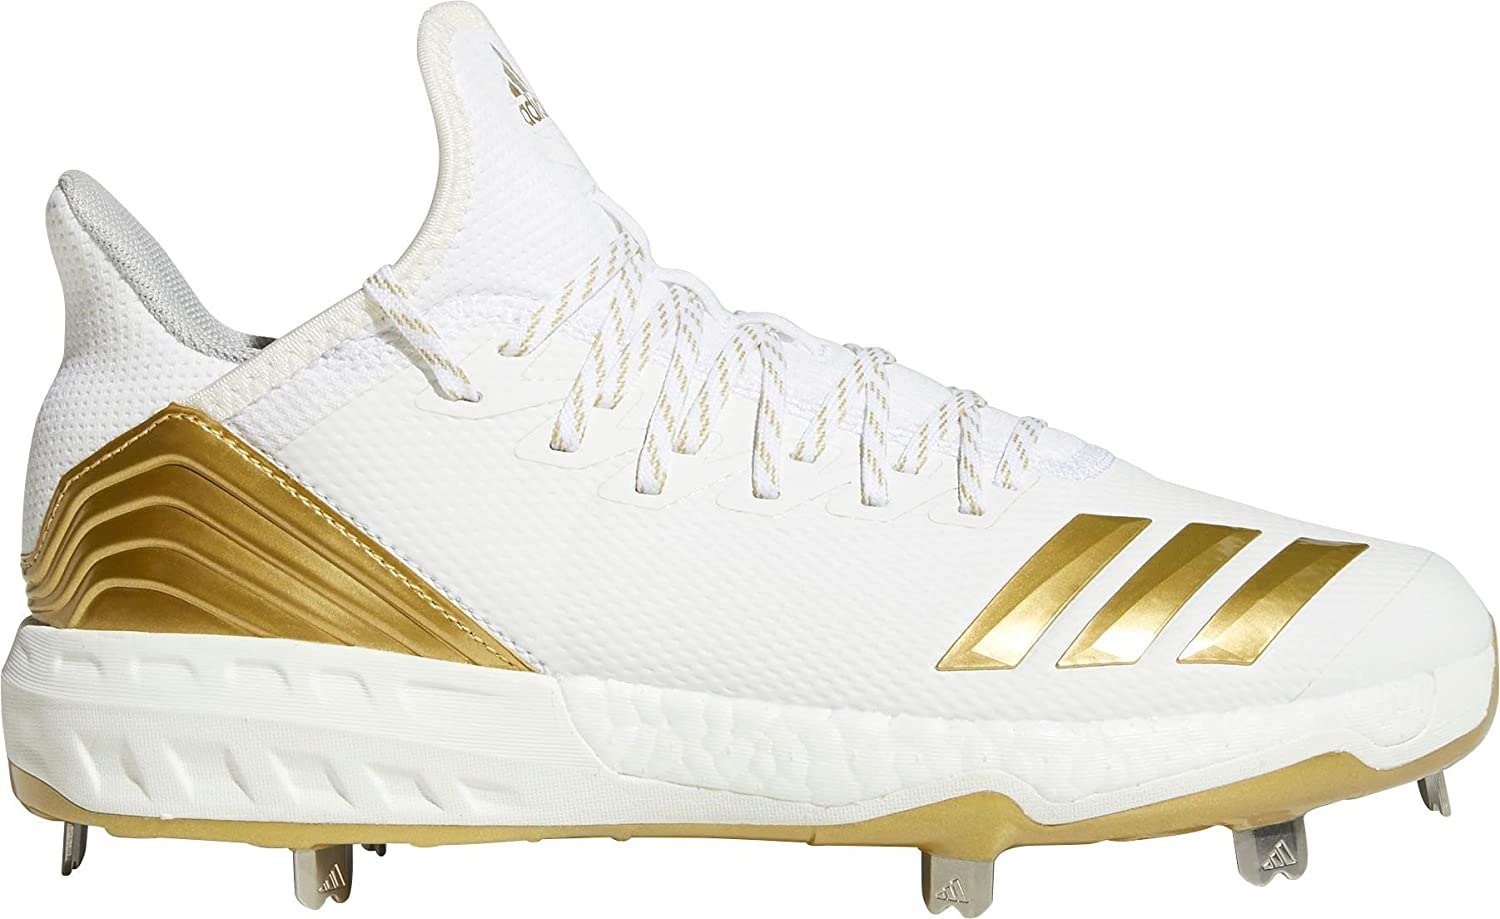 White gold adidas Men's Icon 4 Metal Baseball Cleats